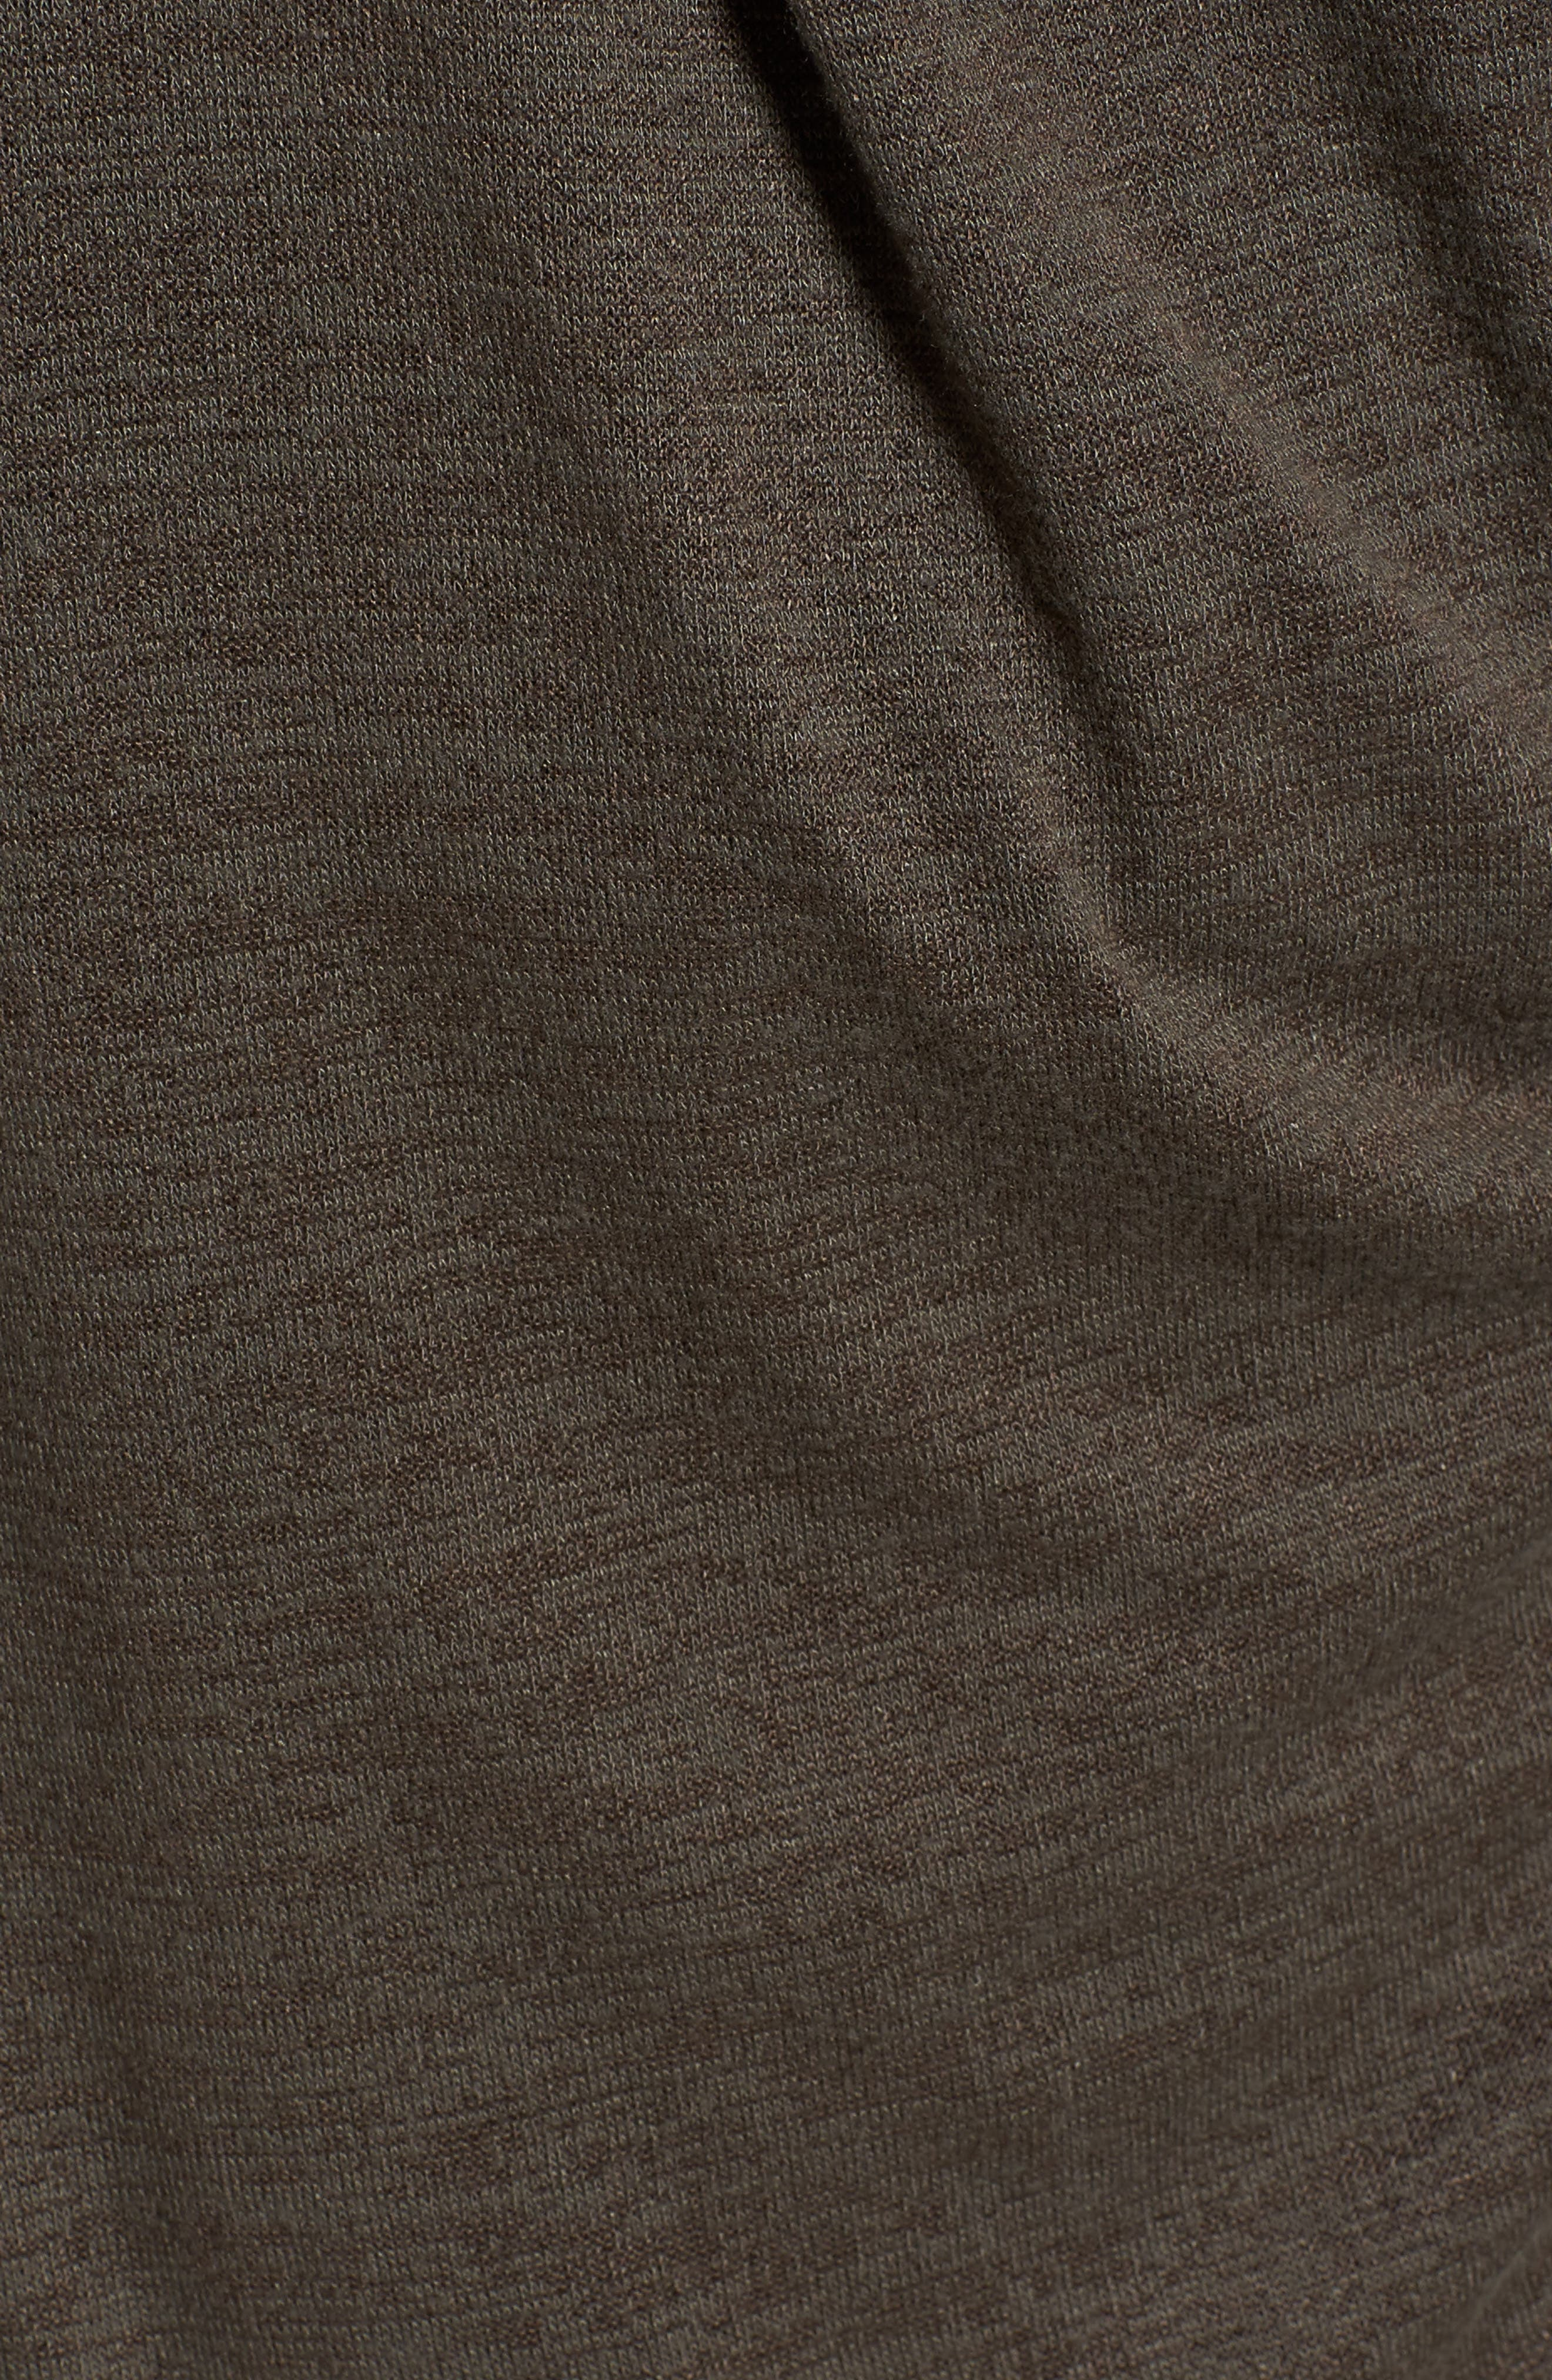 Every Occasion Drape Top,                             Alternate thumbnail 19, color,